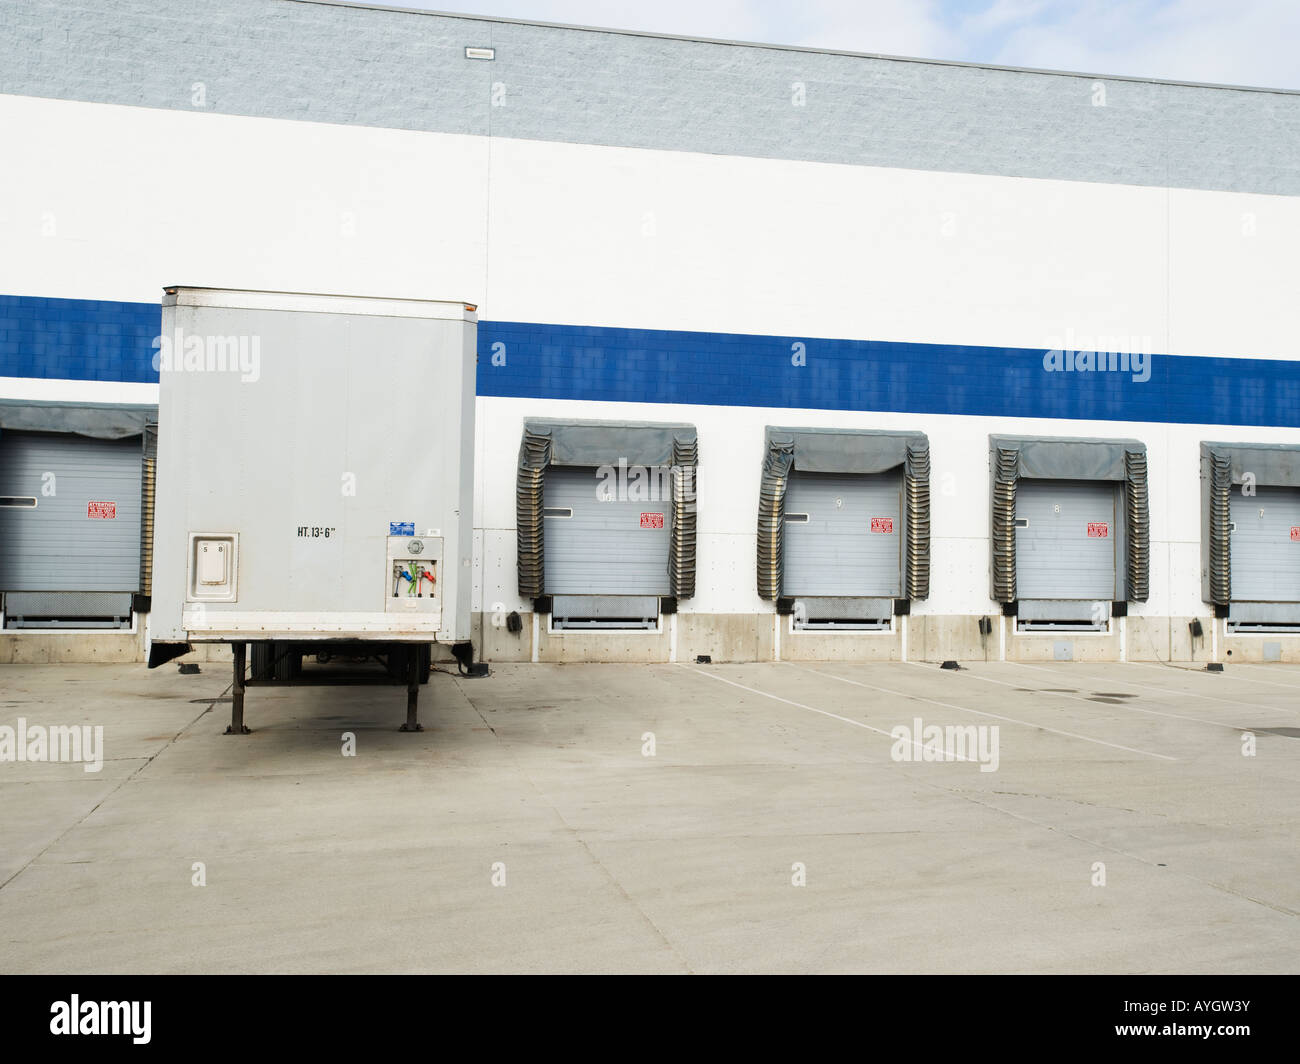 Truck parked at loading dock - Stock Image